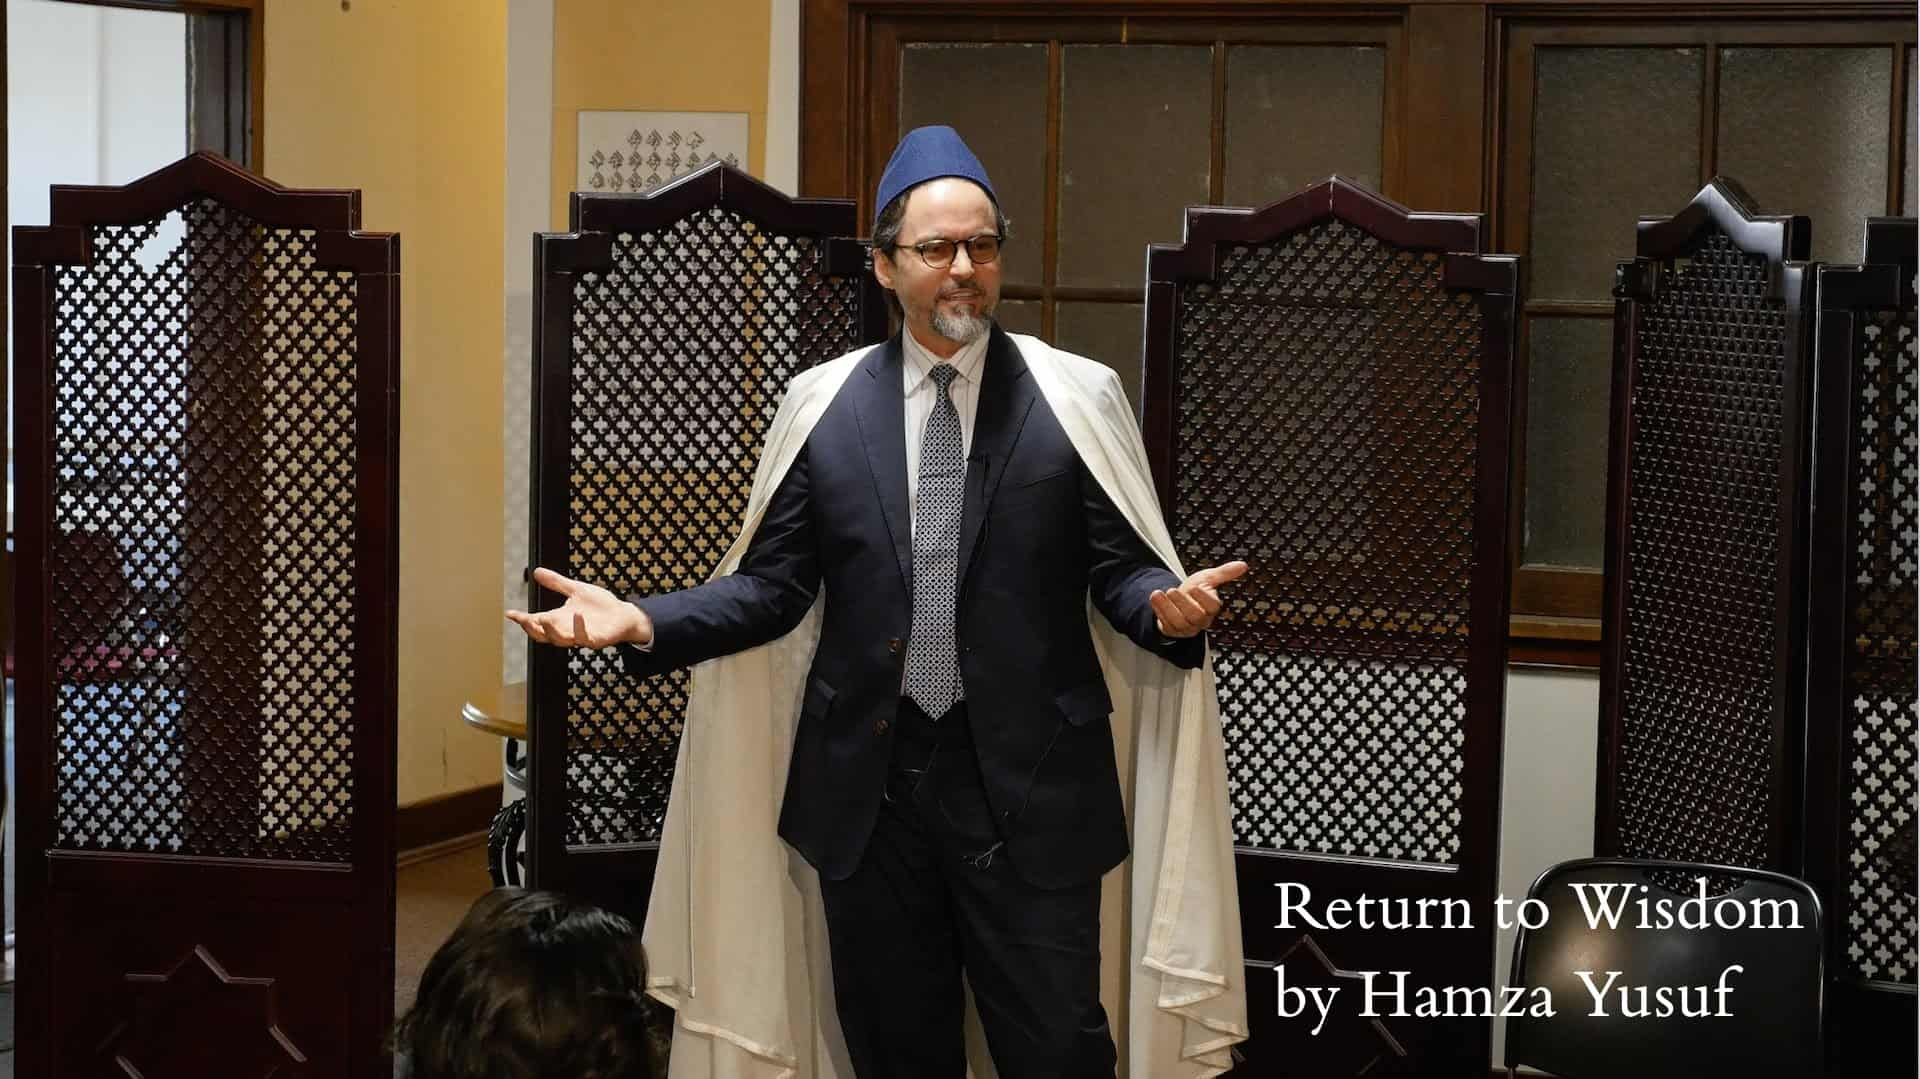 Hamza Yusuf – Return to Wisdom